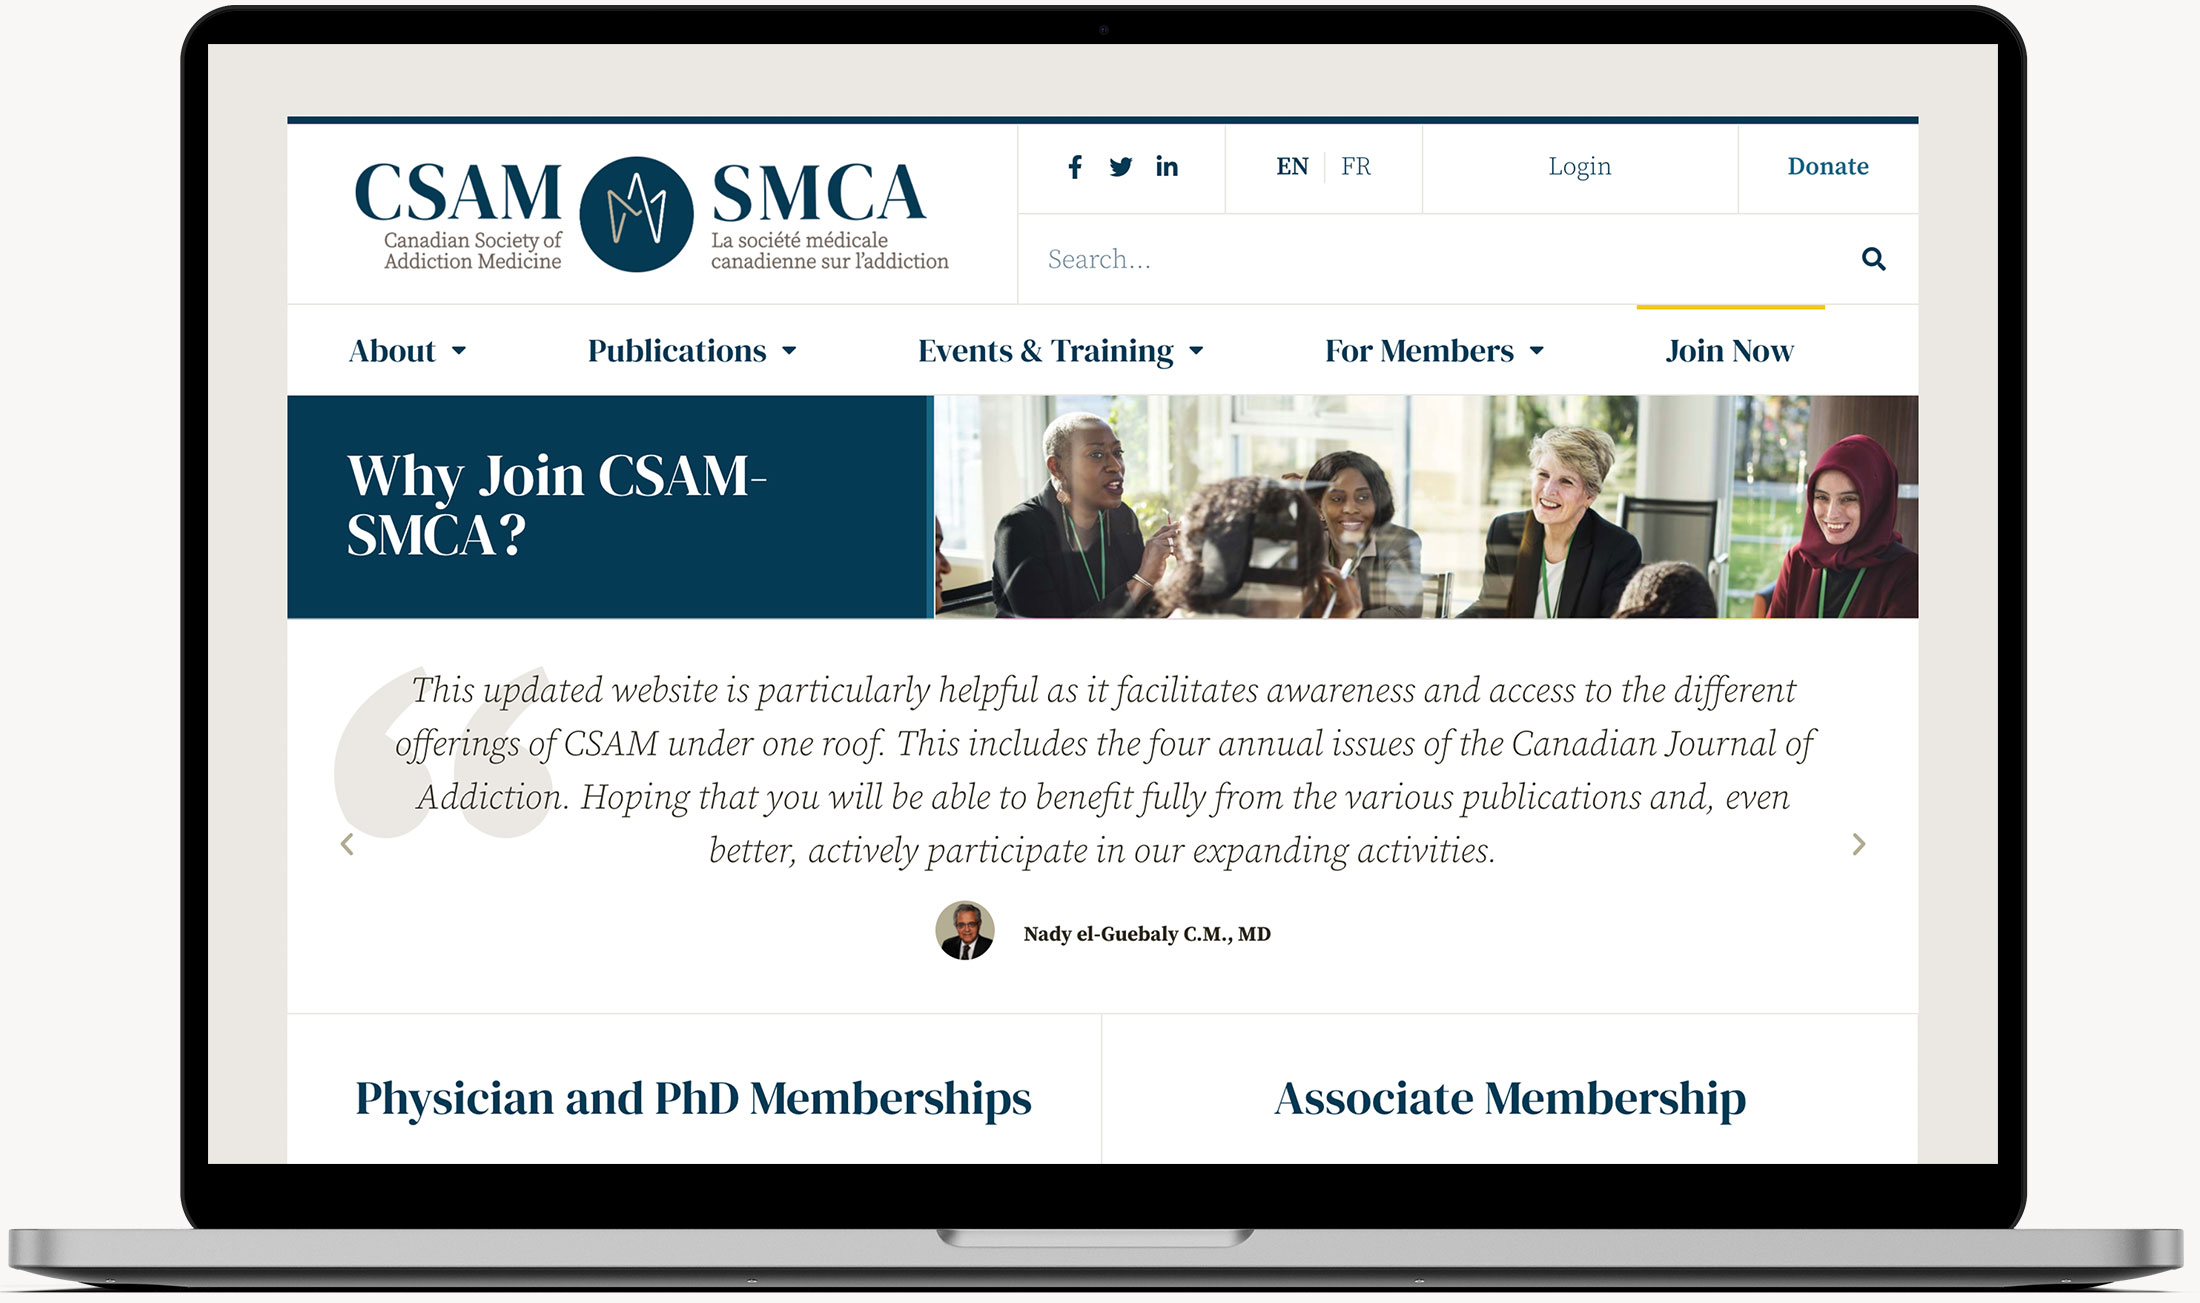 CSAM-SMCA General Page